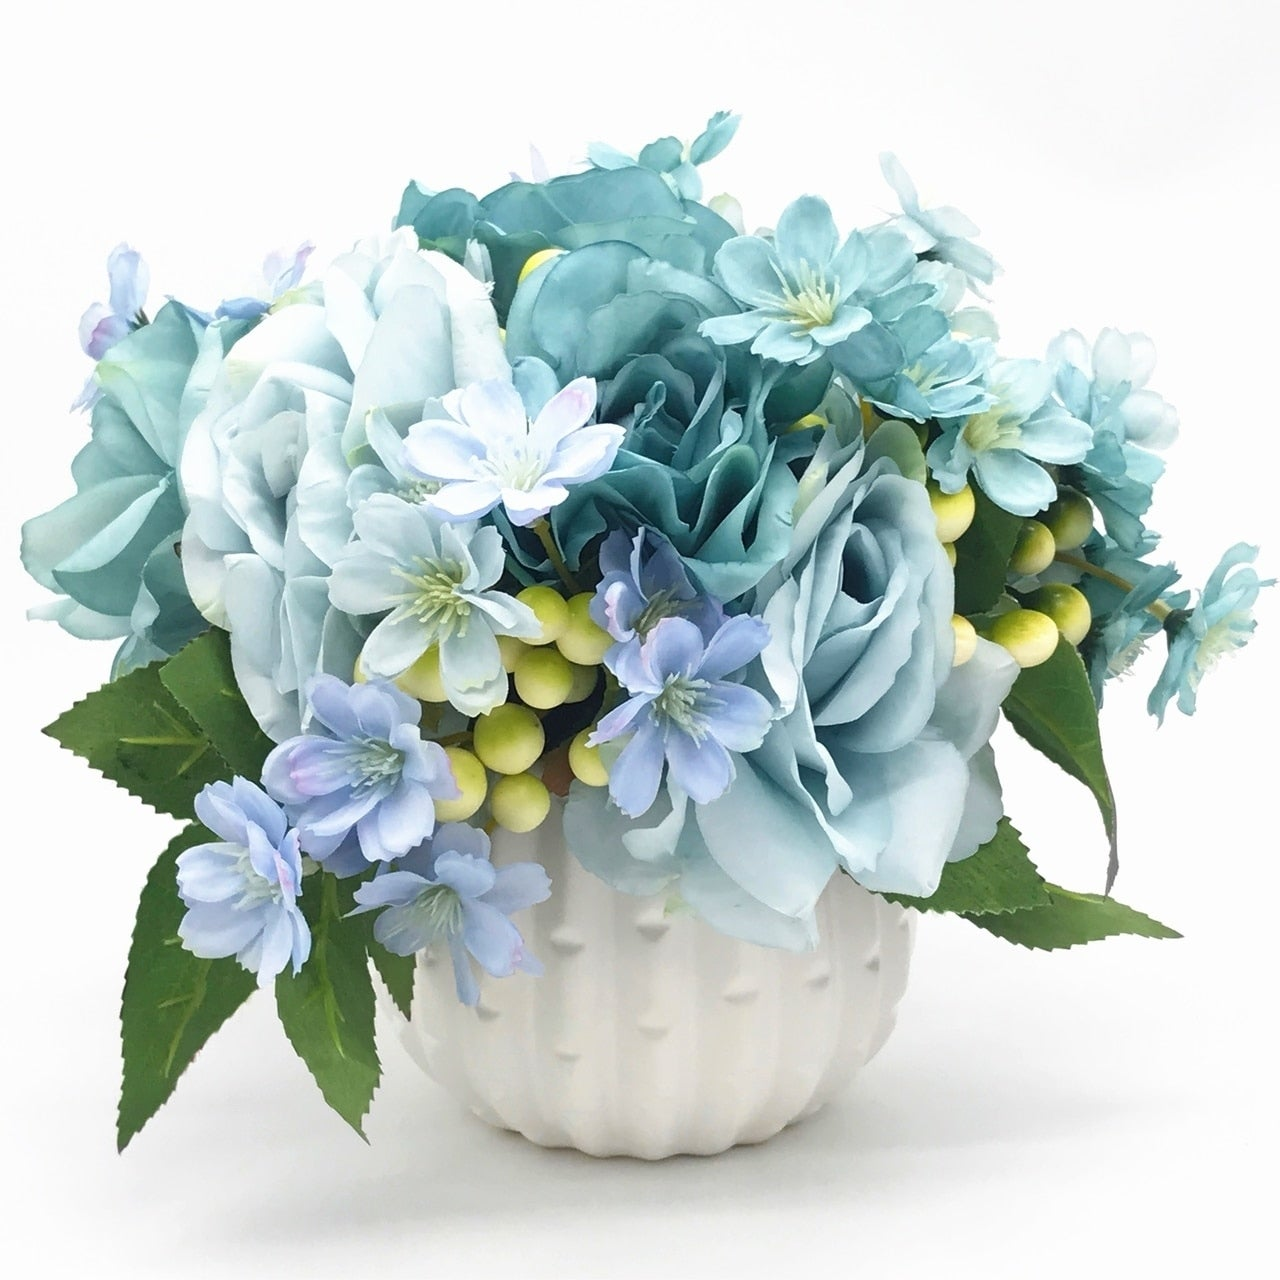 Enova Home Blue Open Rose And Mixed Silk Flower Arrangement With White Ceramic Vase Overstock 27869273